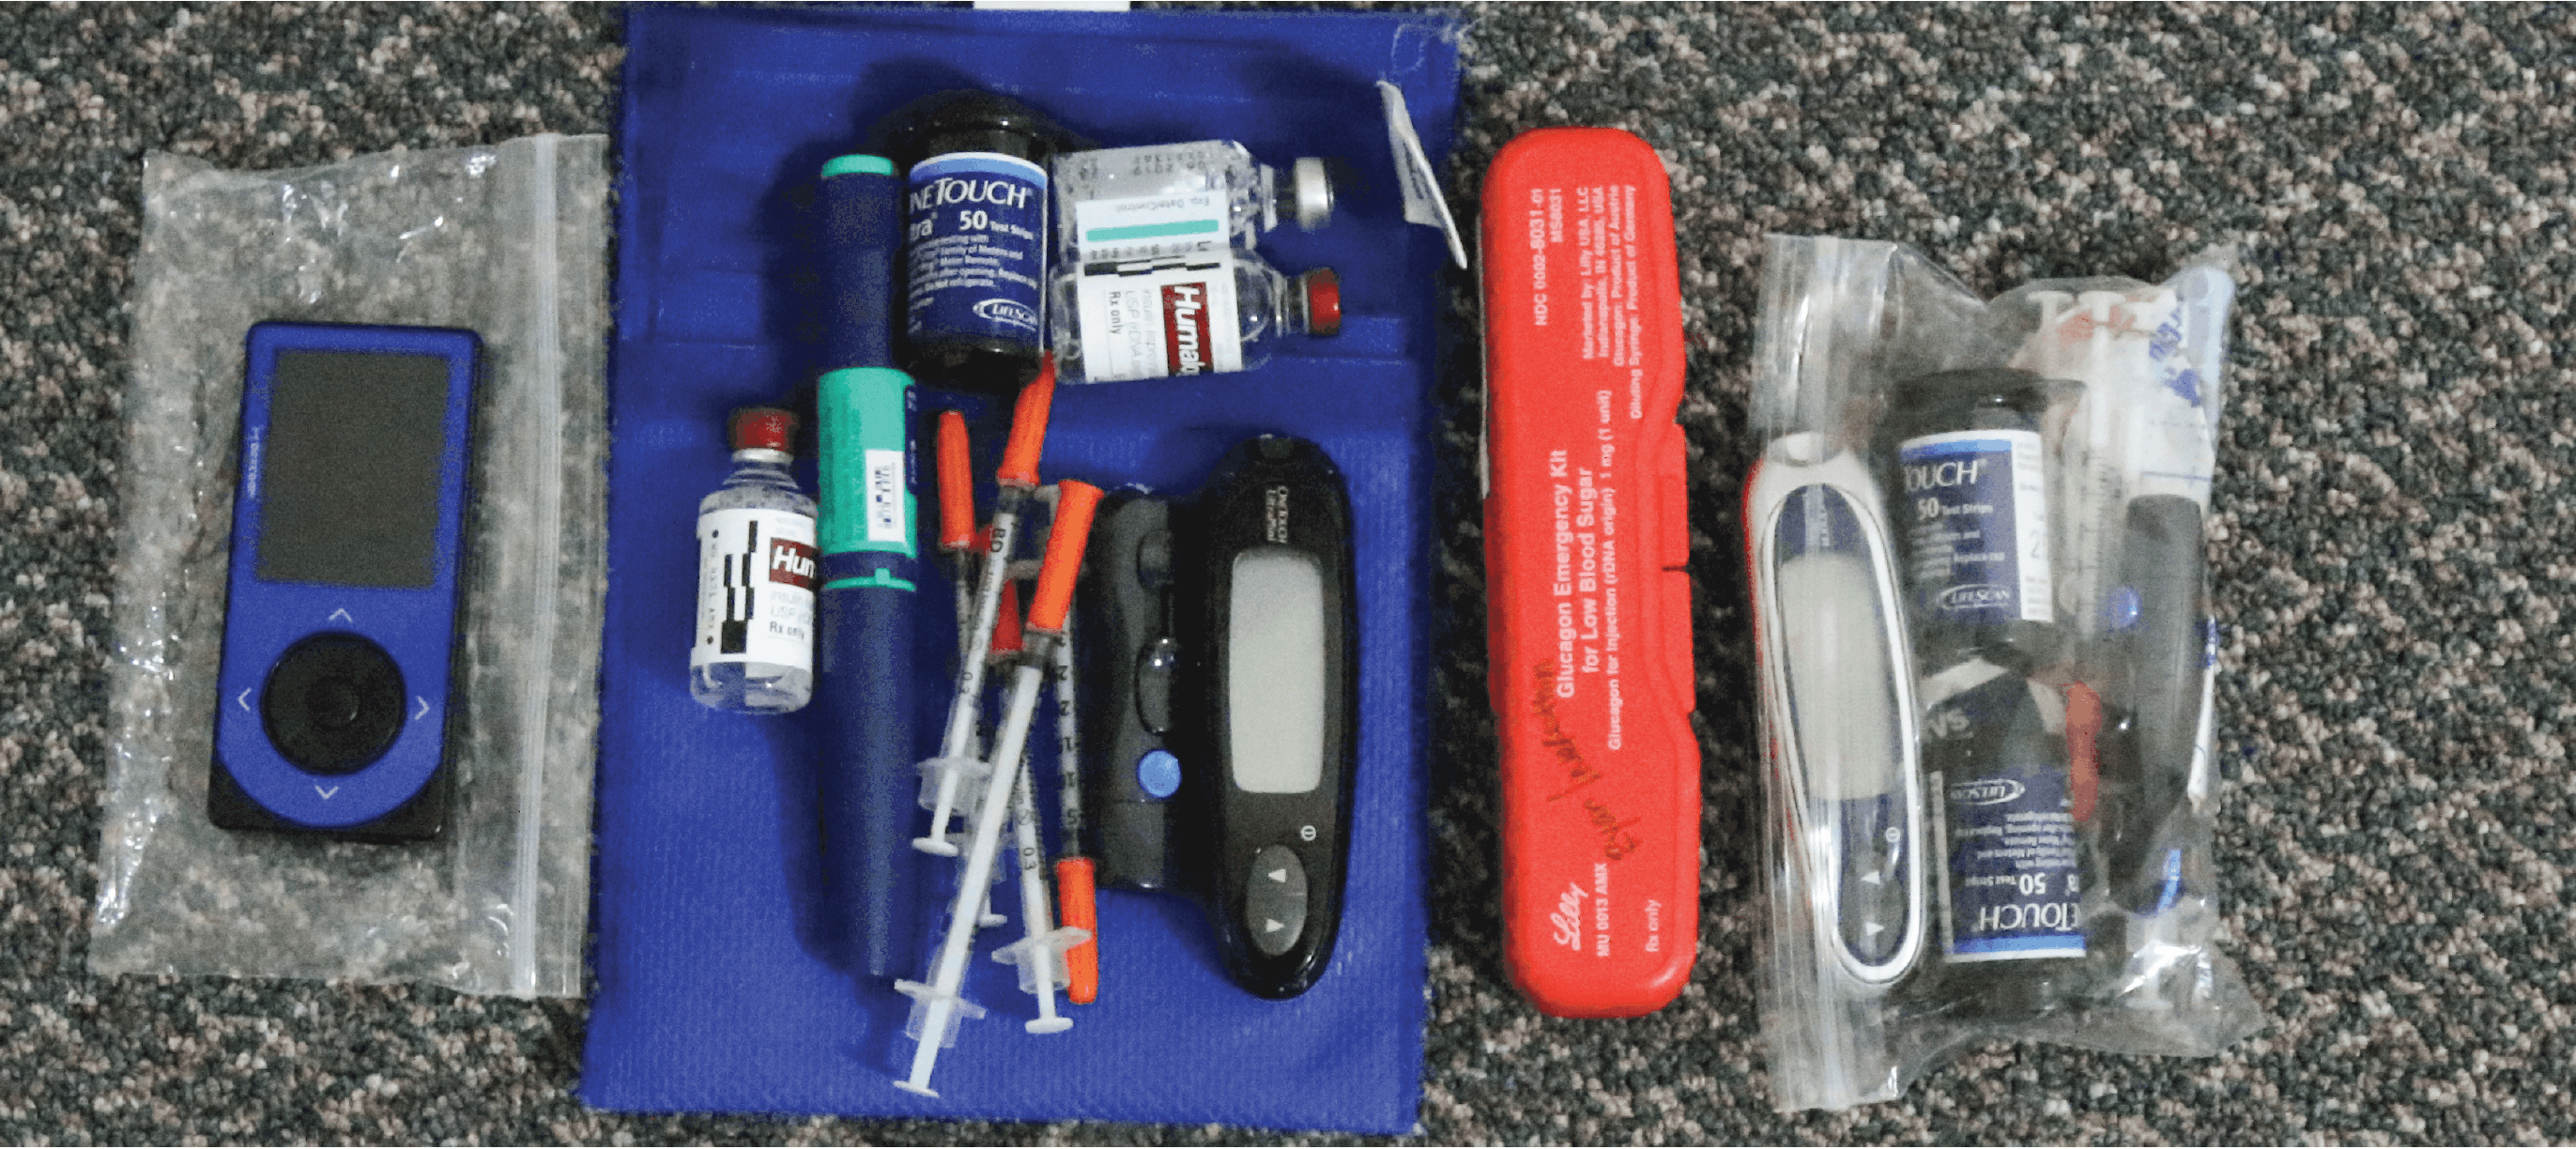 Into the Woods with Diabetes…More Than Just the Numbers